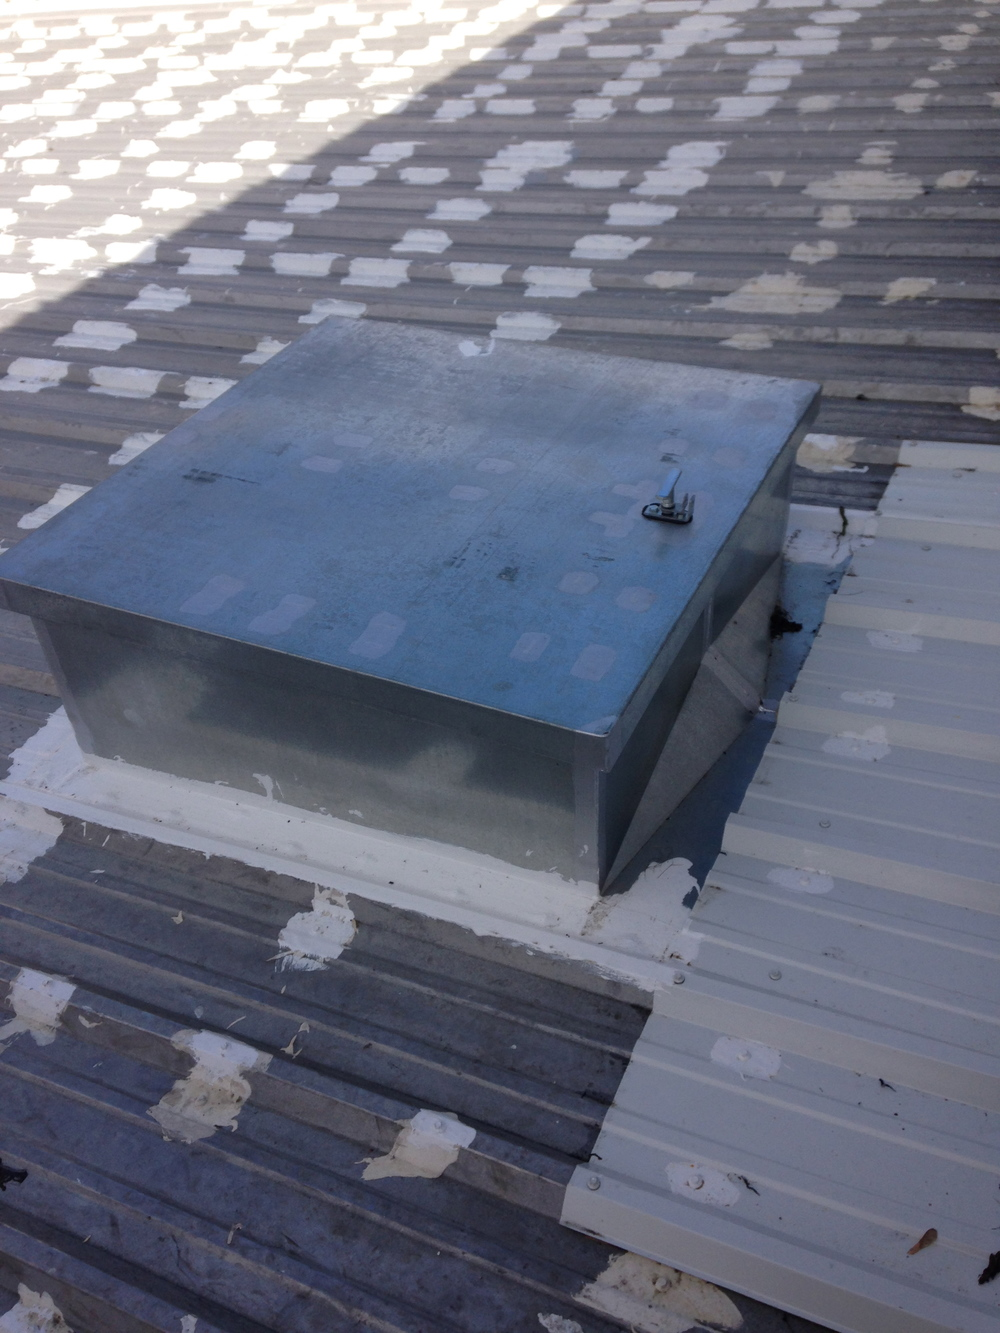 Roof Hatches And Other Roof Access Systems Metalguard